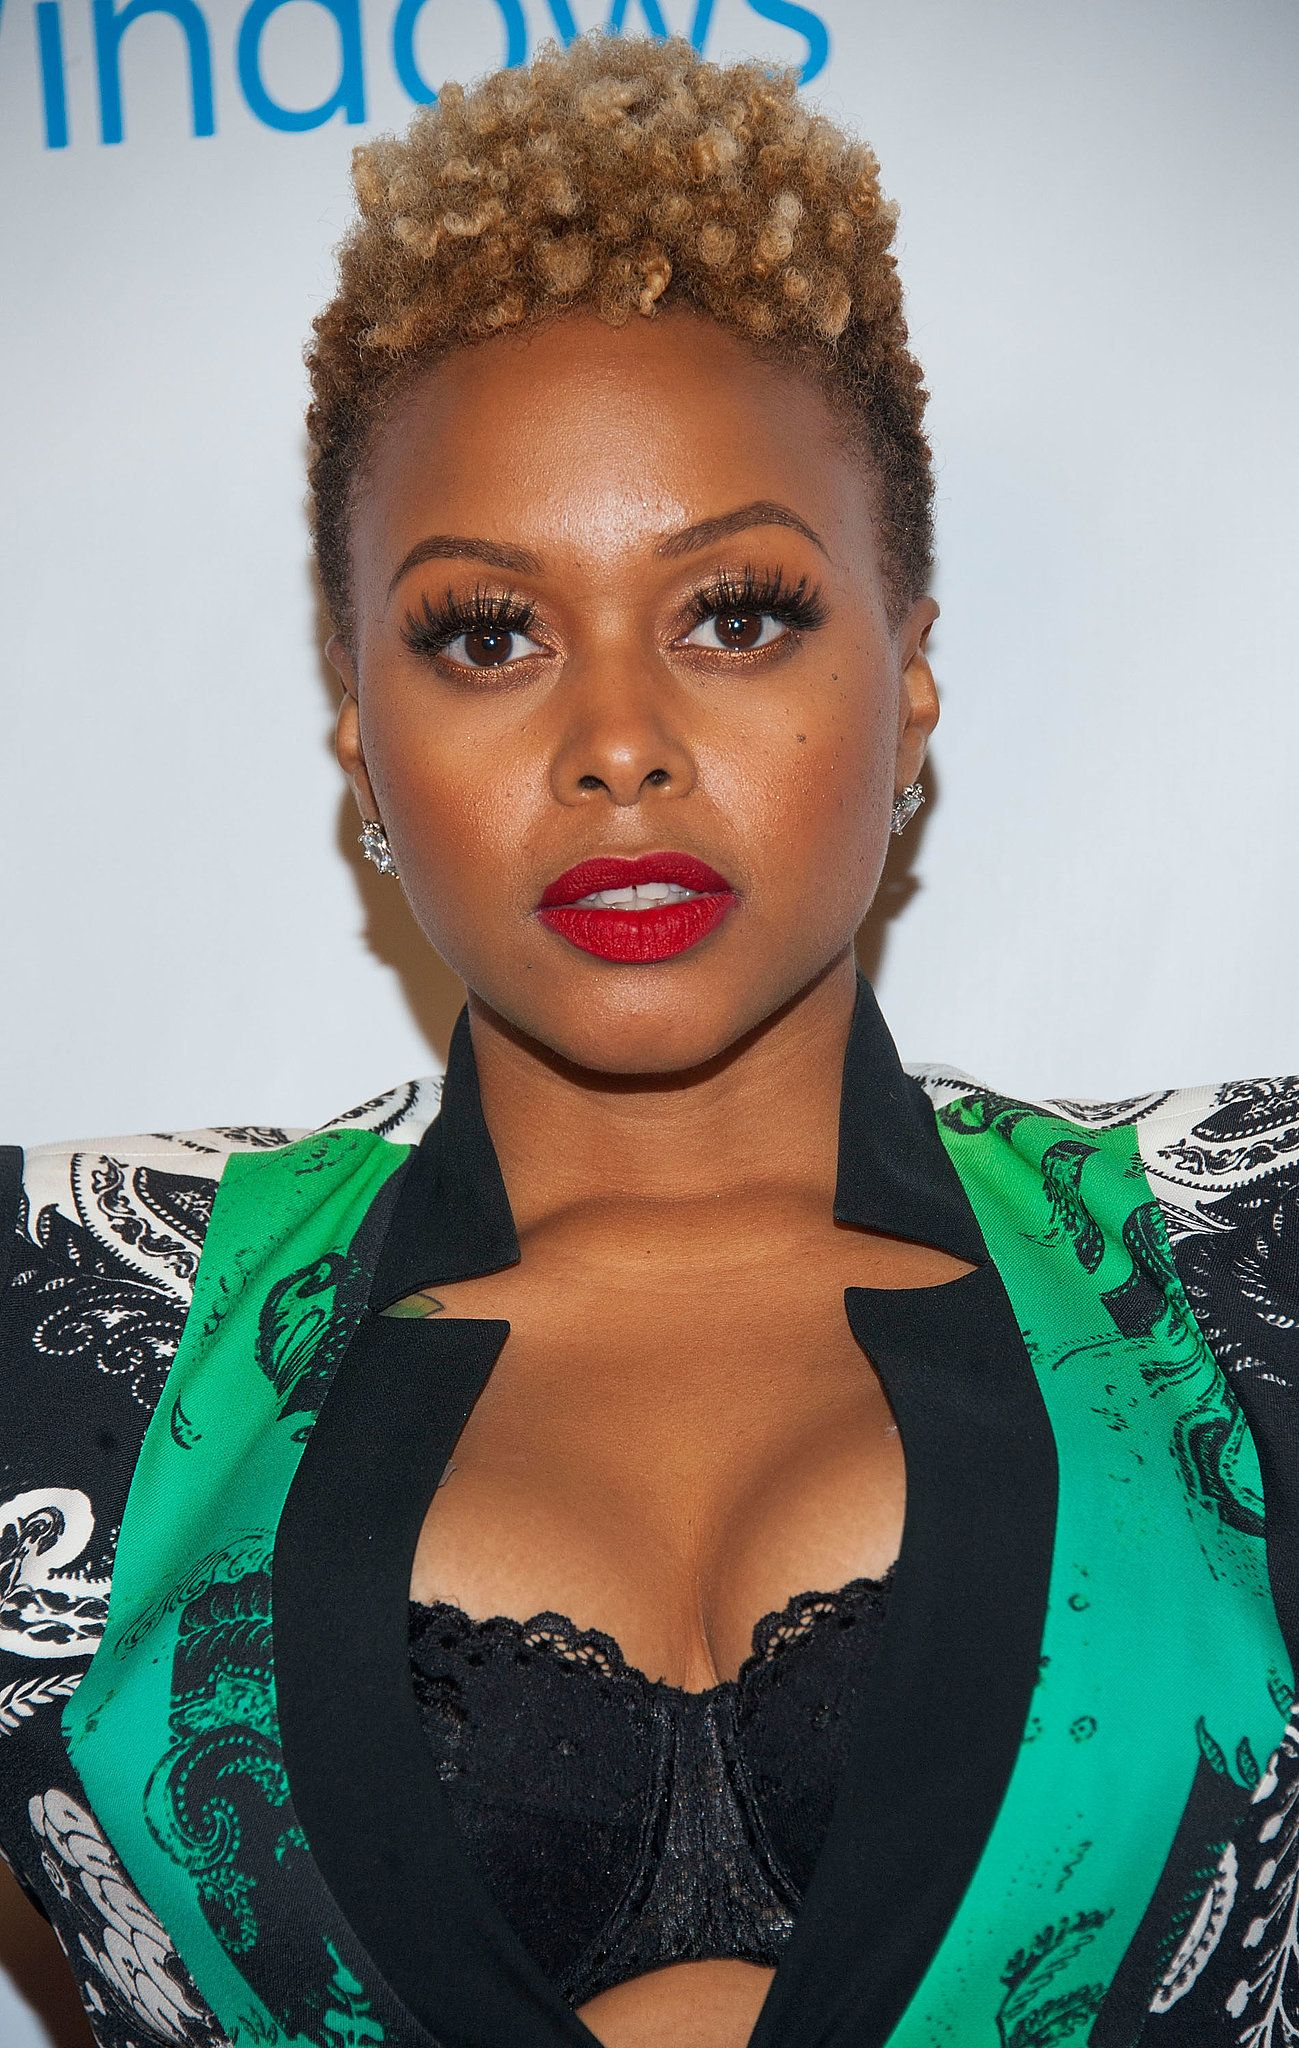 chrisette michele | naturally true | natural hair styles